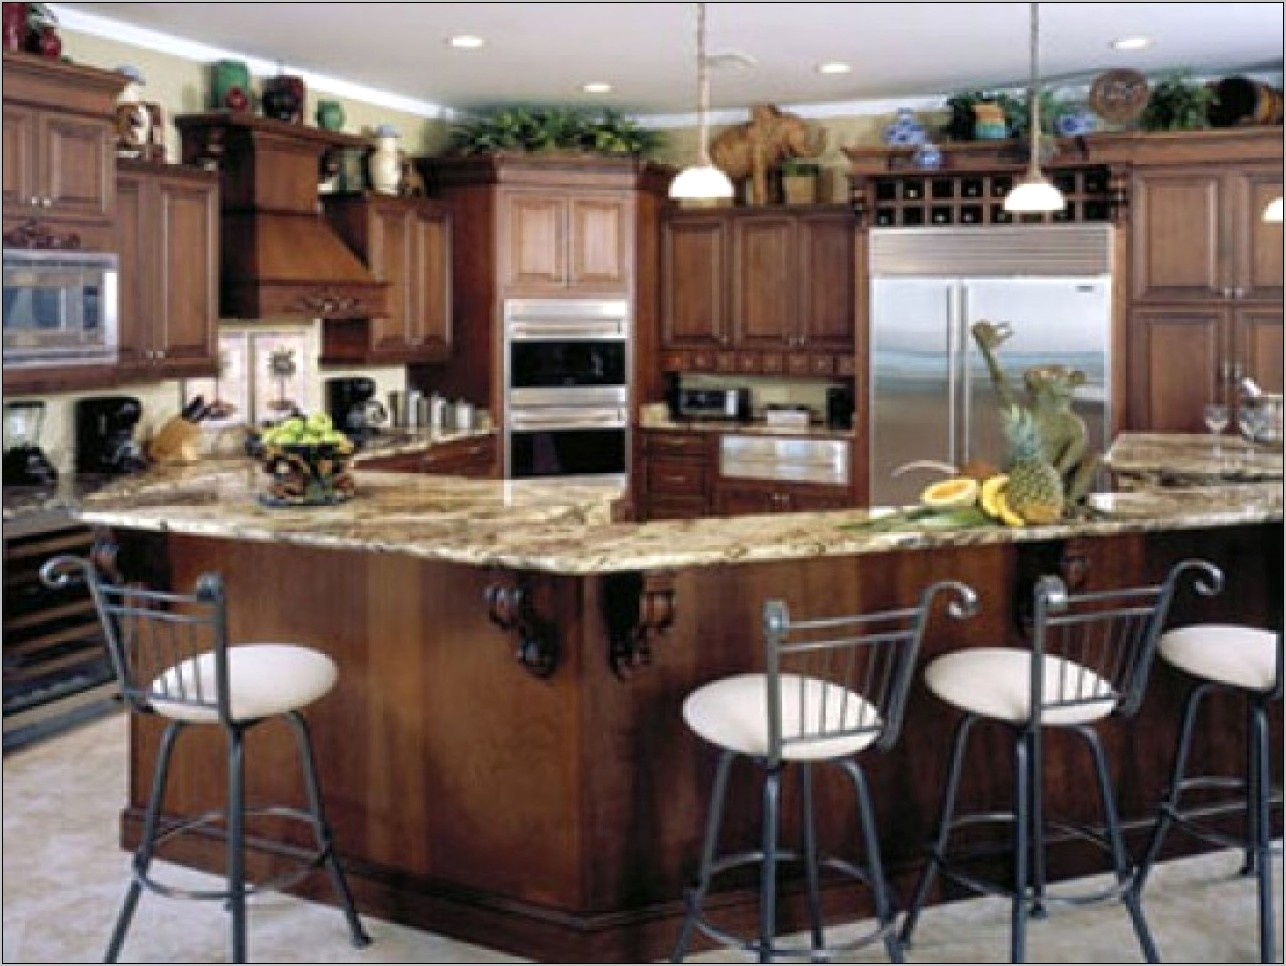 Decorating Ideas For Area Above Kitchen Cabinets